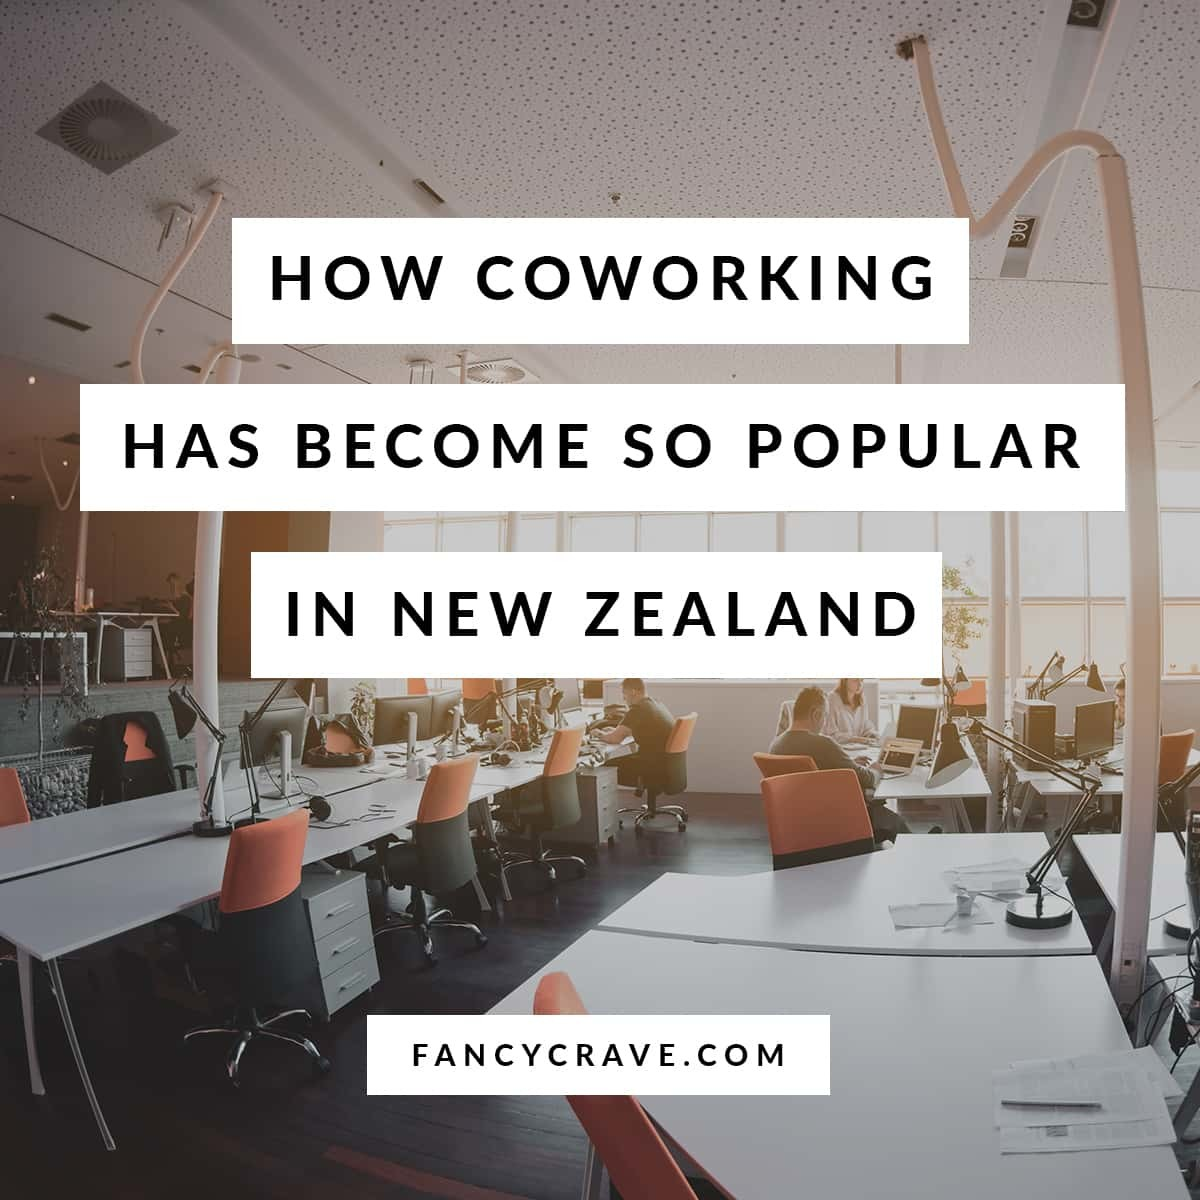 How Coworking Has Become So Popular in New Zealand